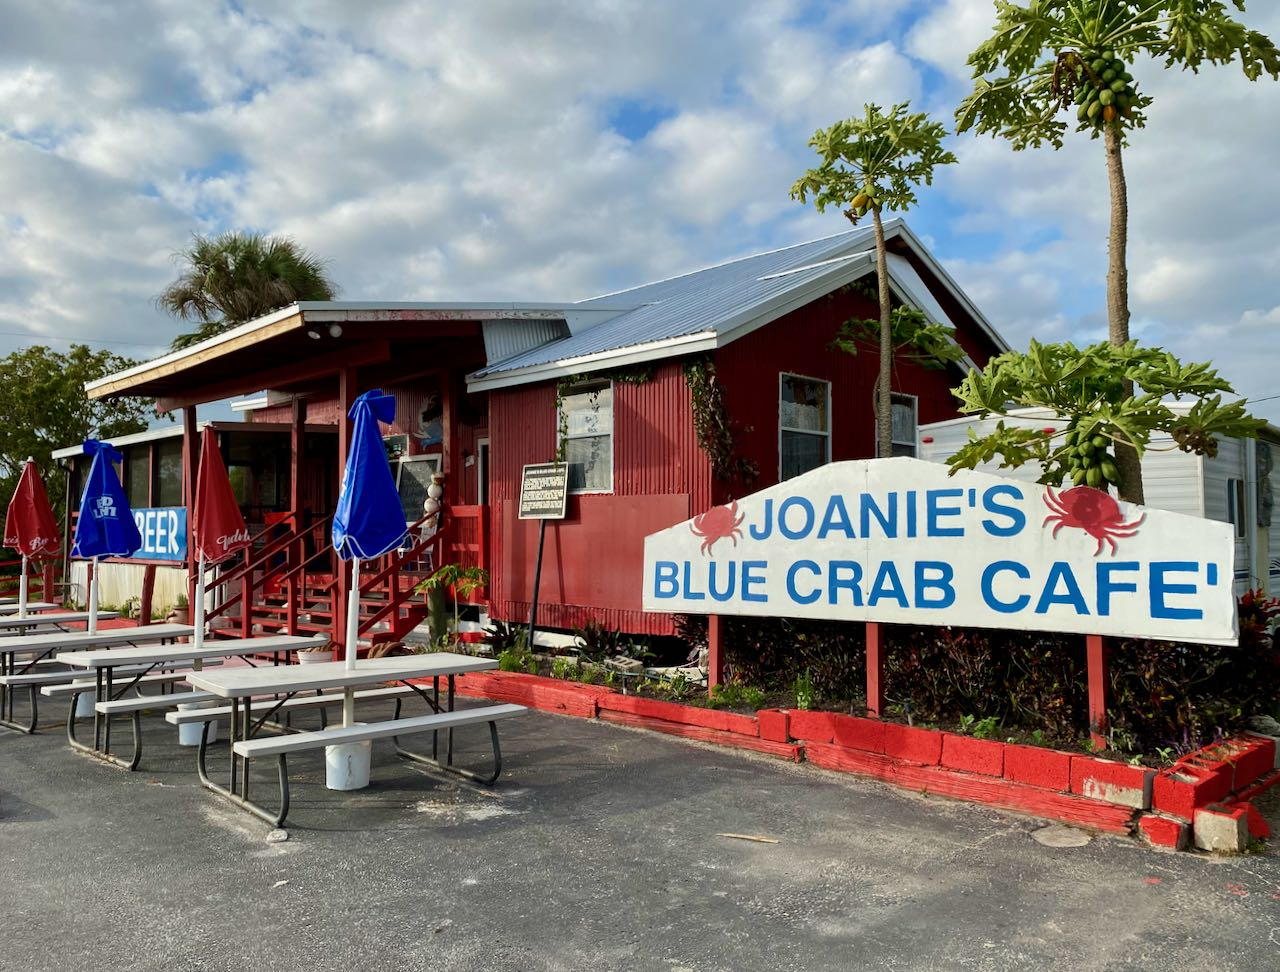 Joanies Blue Crab Cafe Attractions and Places to Stop Along the Tamiami Trail/U.S. Highway 41